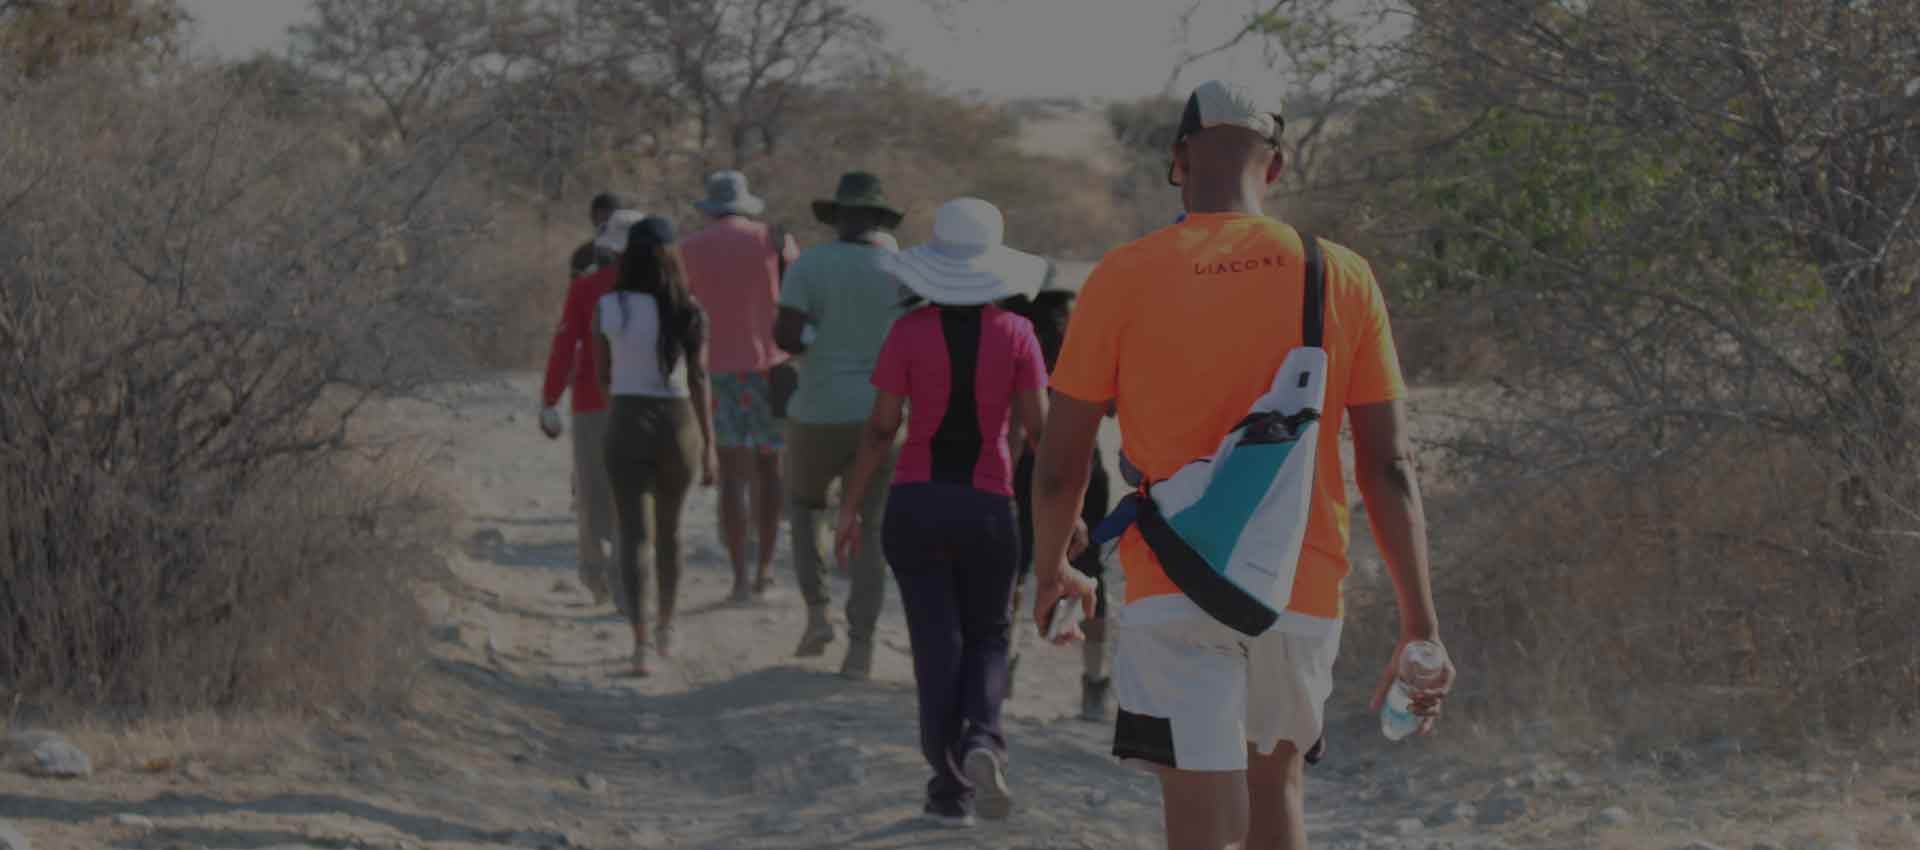 Batswana walking at the Makgadikgadi Pans